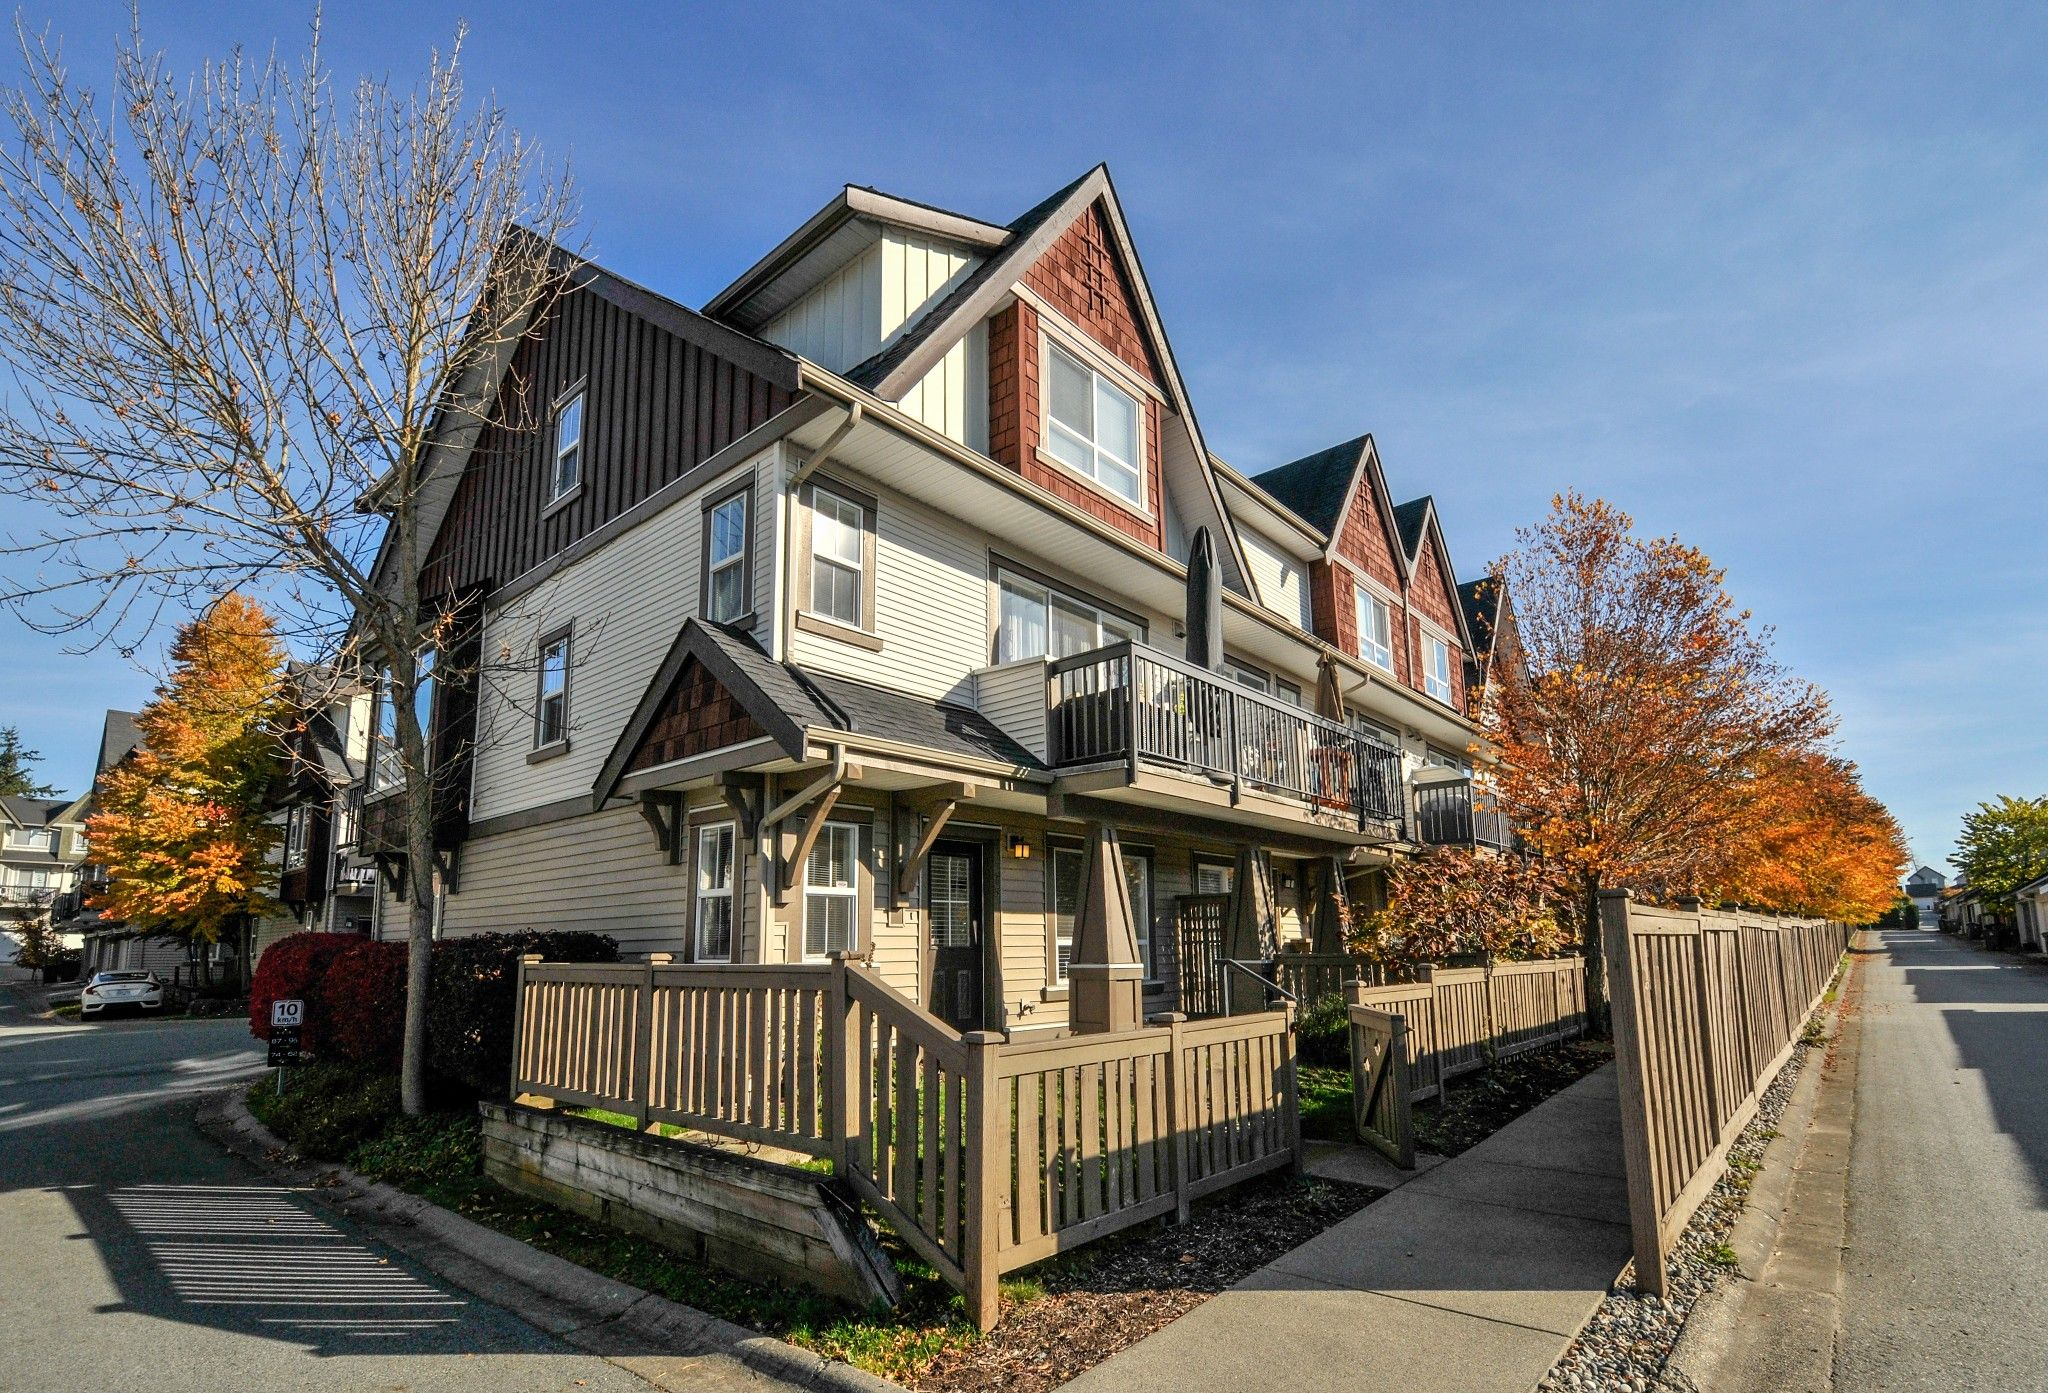 Main Photo: 75 7155 189 Street in Surrey: Clayton Townhouse for sale : MLS®# R2315998